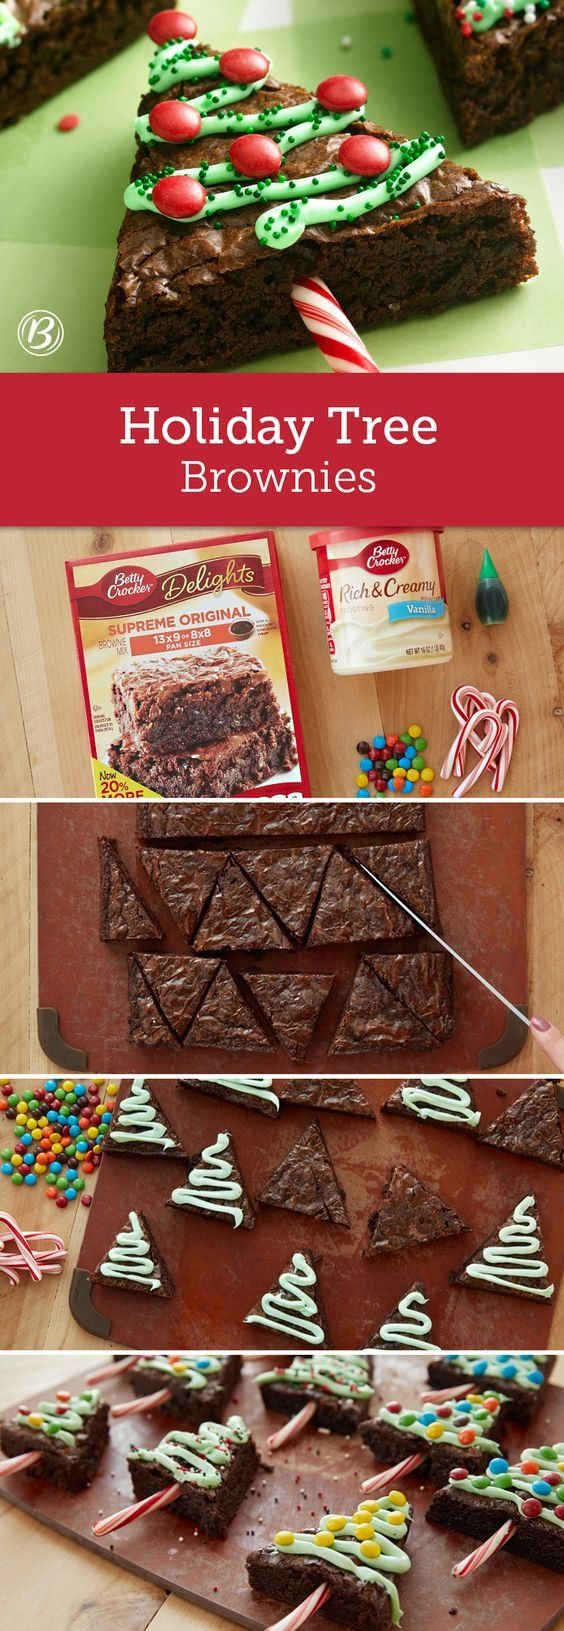 Holiday Tree Brownies   Recipe in 2018   Christmas food gifts ...